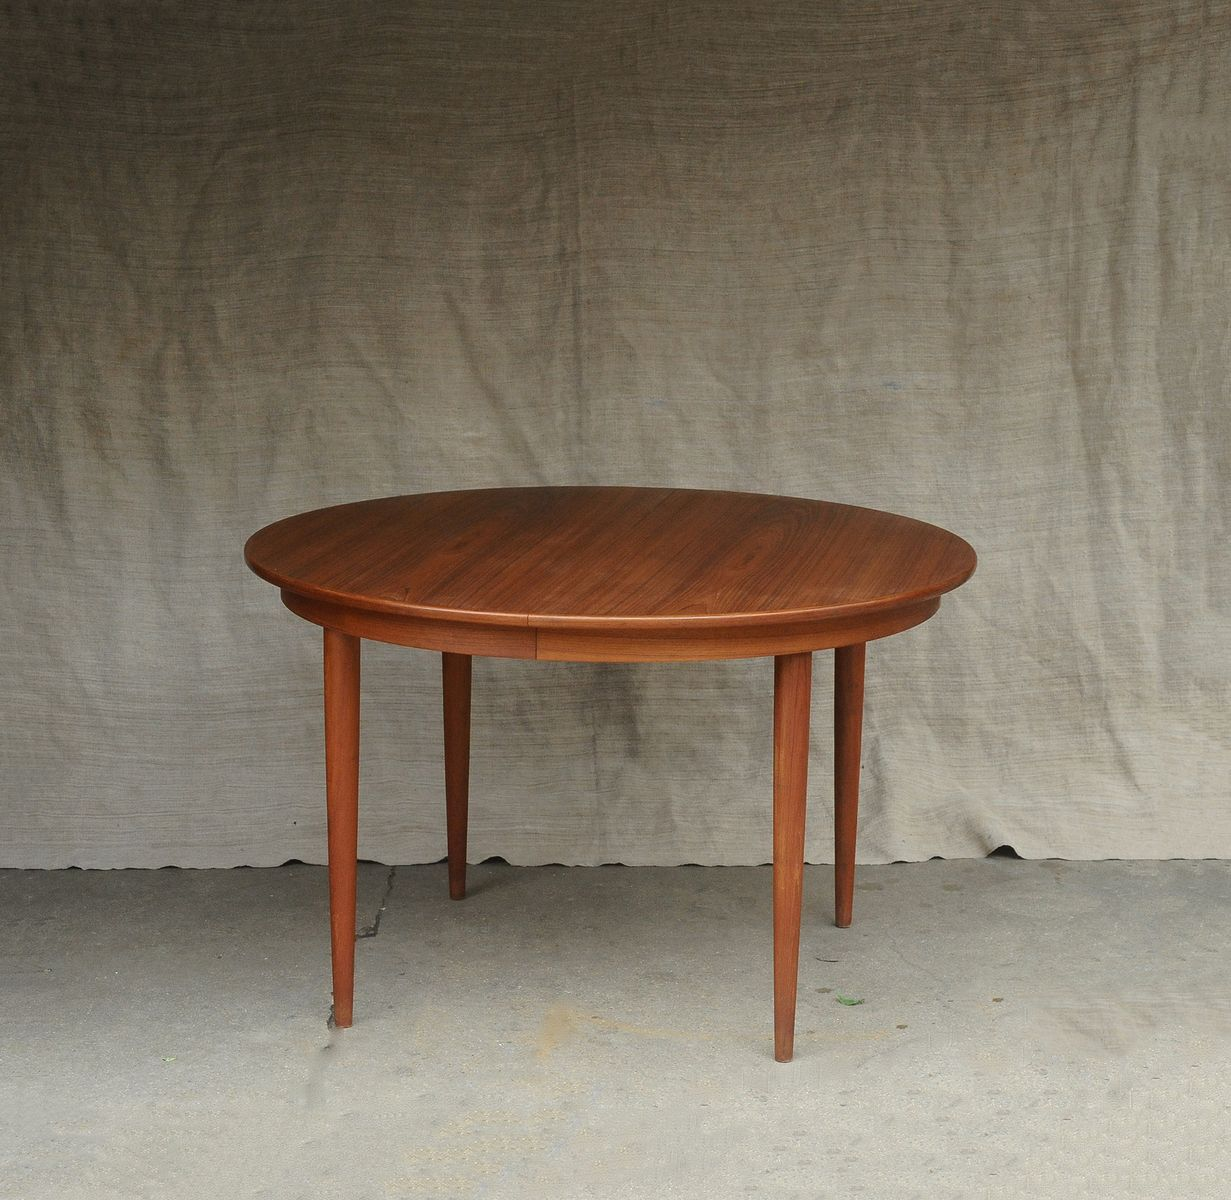 Table ronde extensible mid century scandinave en vente sur for Table scandinave extensible